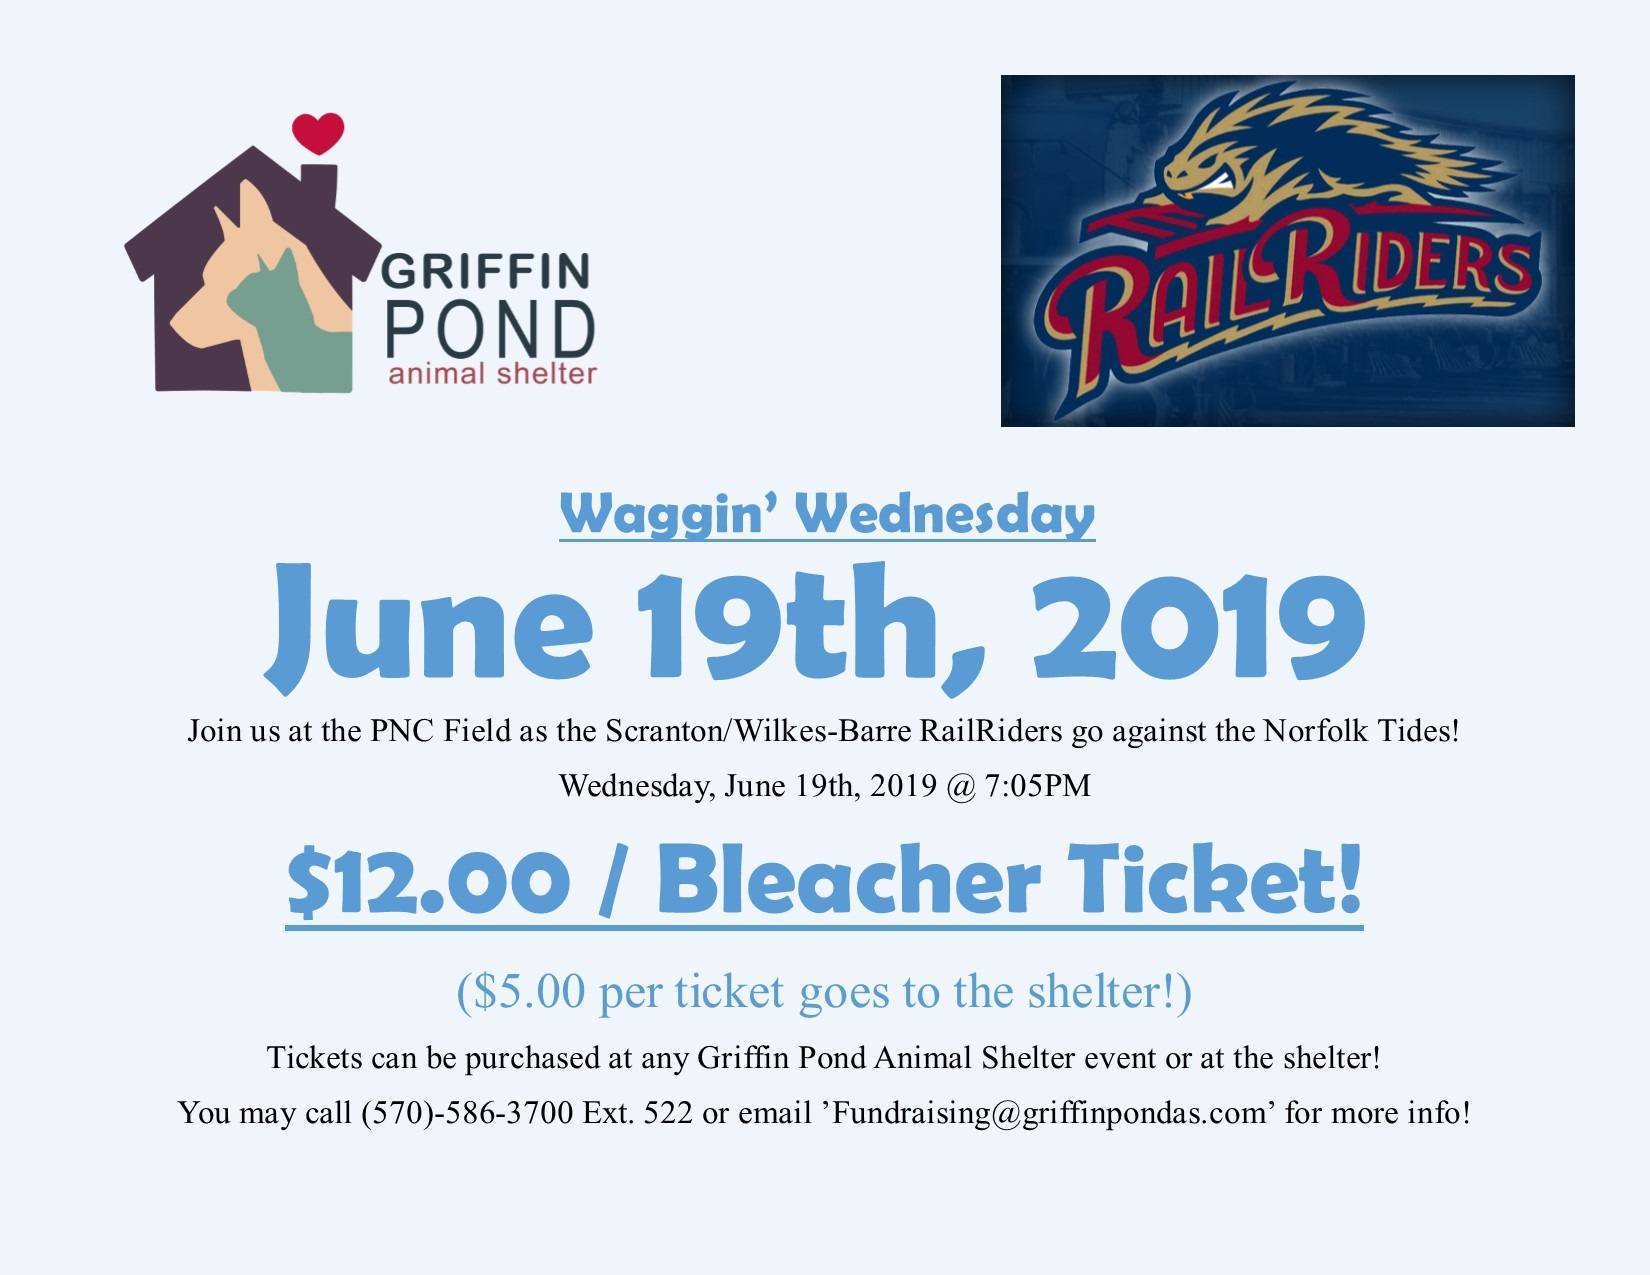 Waggin' Wednesday at PNC Field